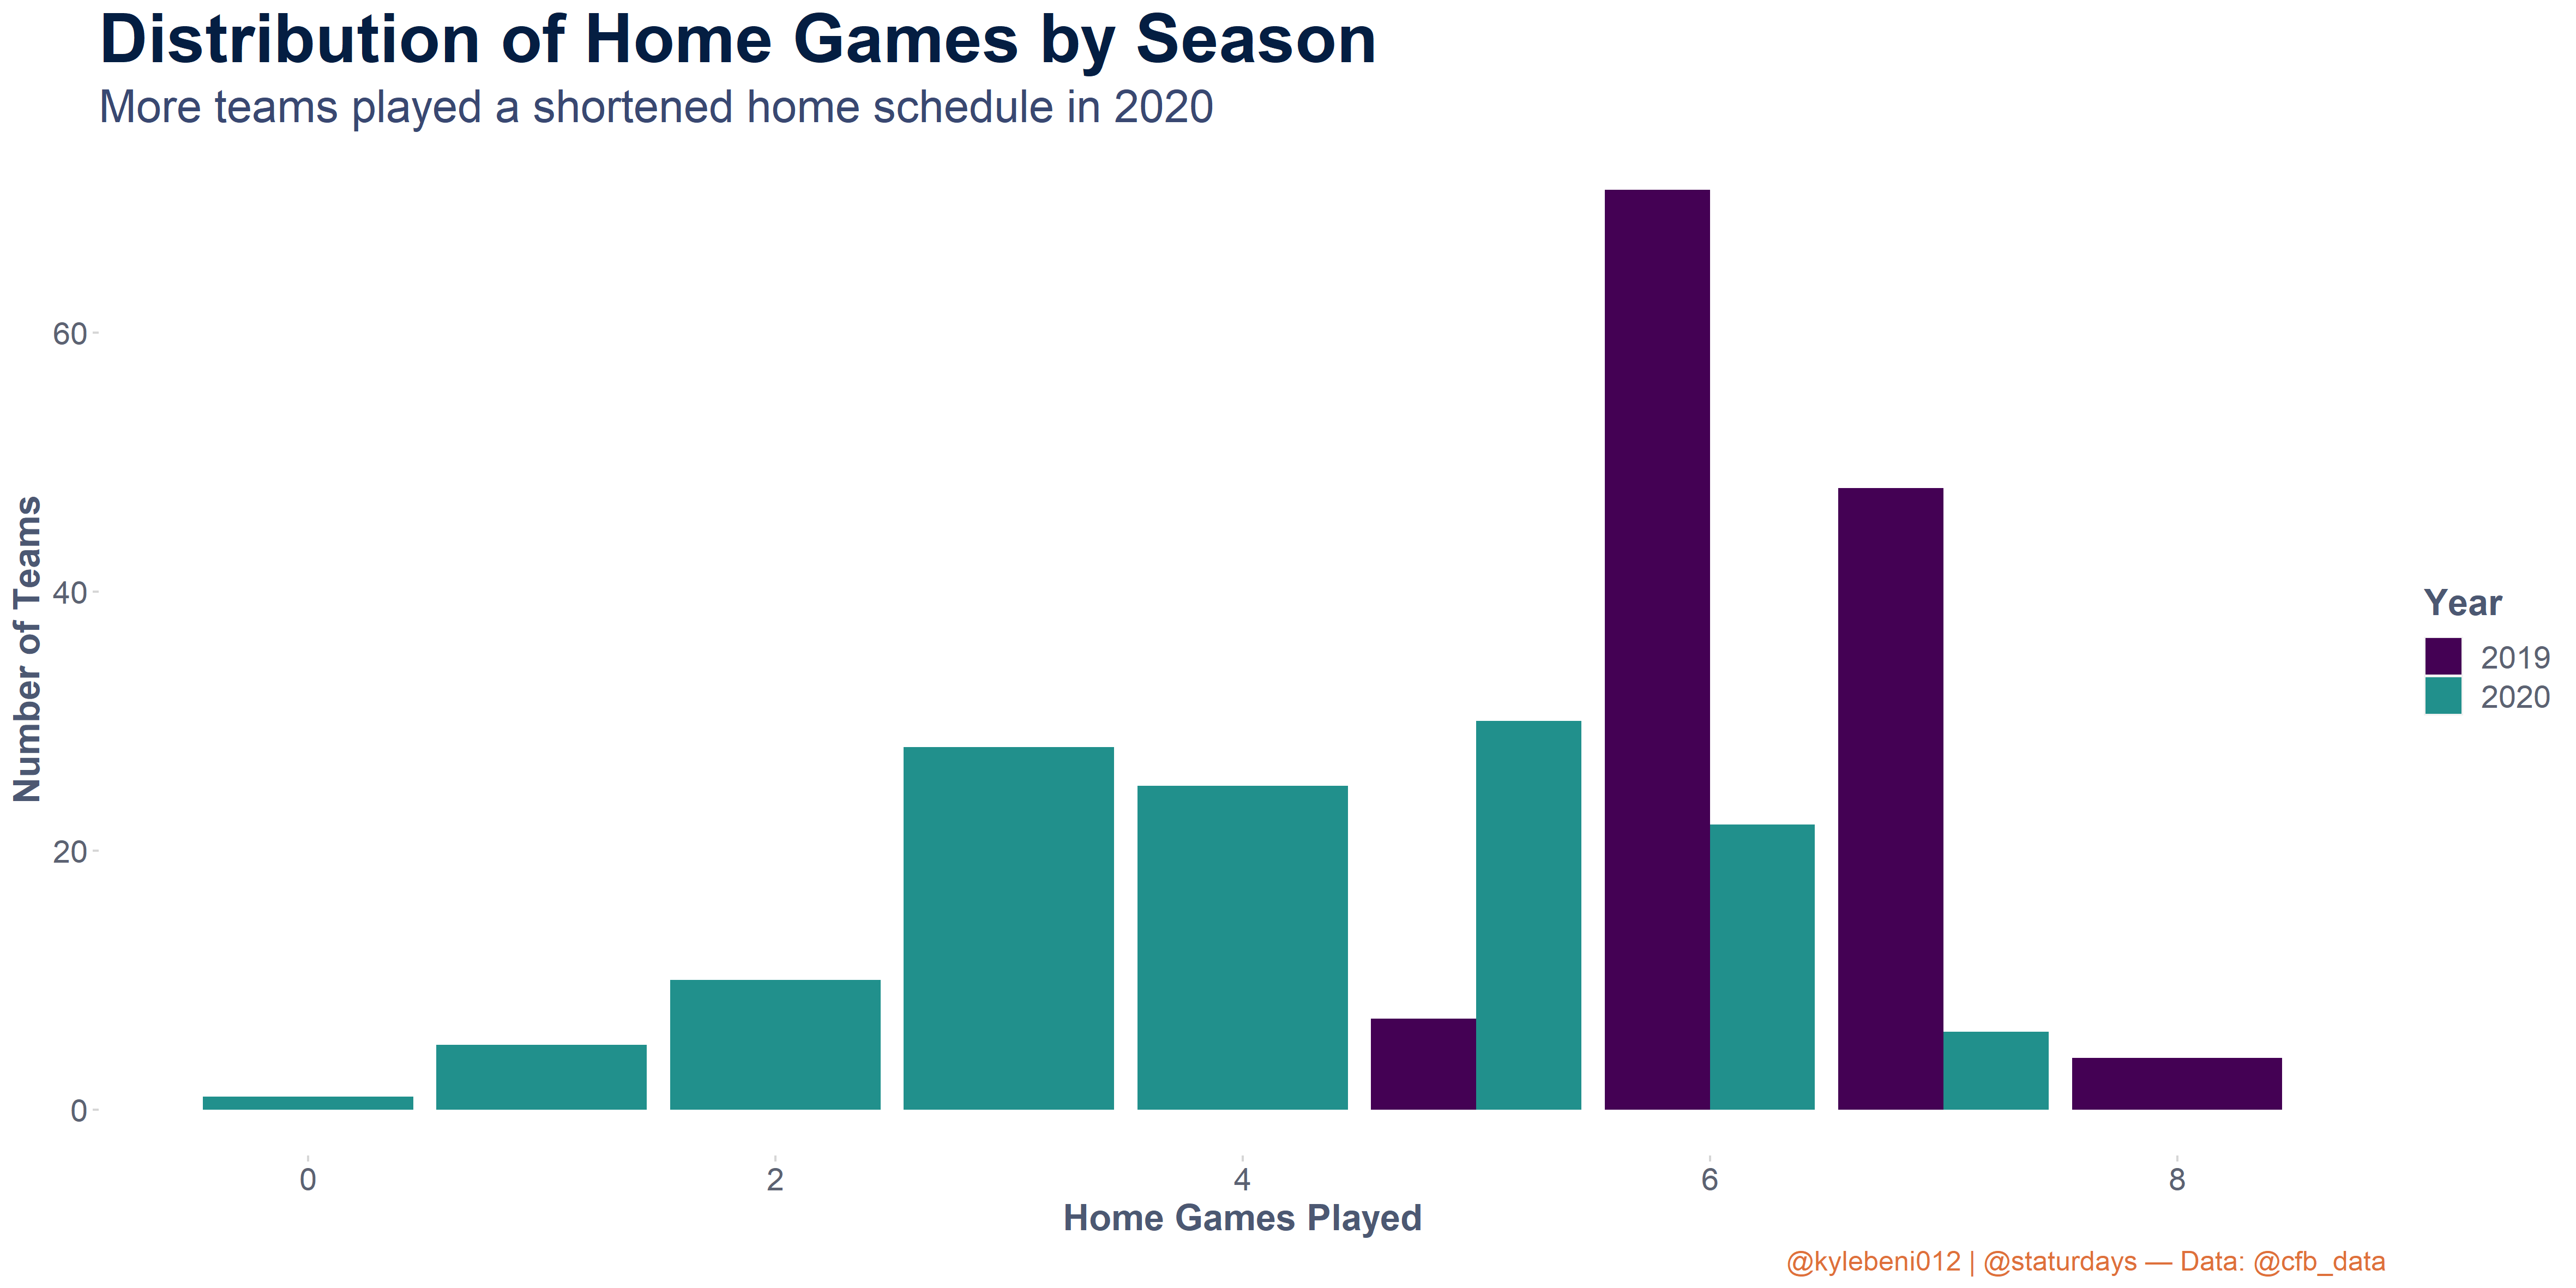 Distribution of number of home games played and count of teams in 2020 vs. 2019. In 2019, every team played 5 or more home games while last year, 69 teams played 4 or less.